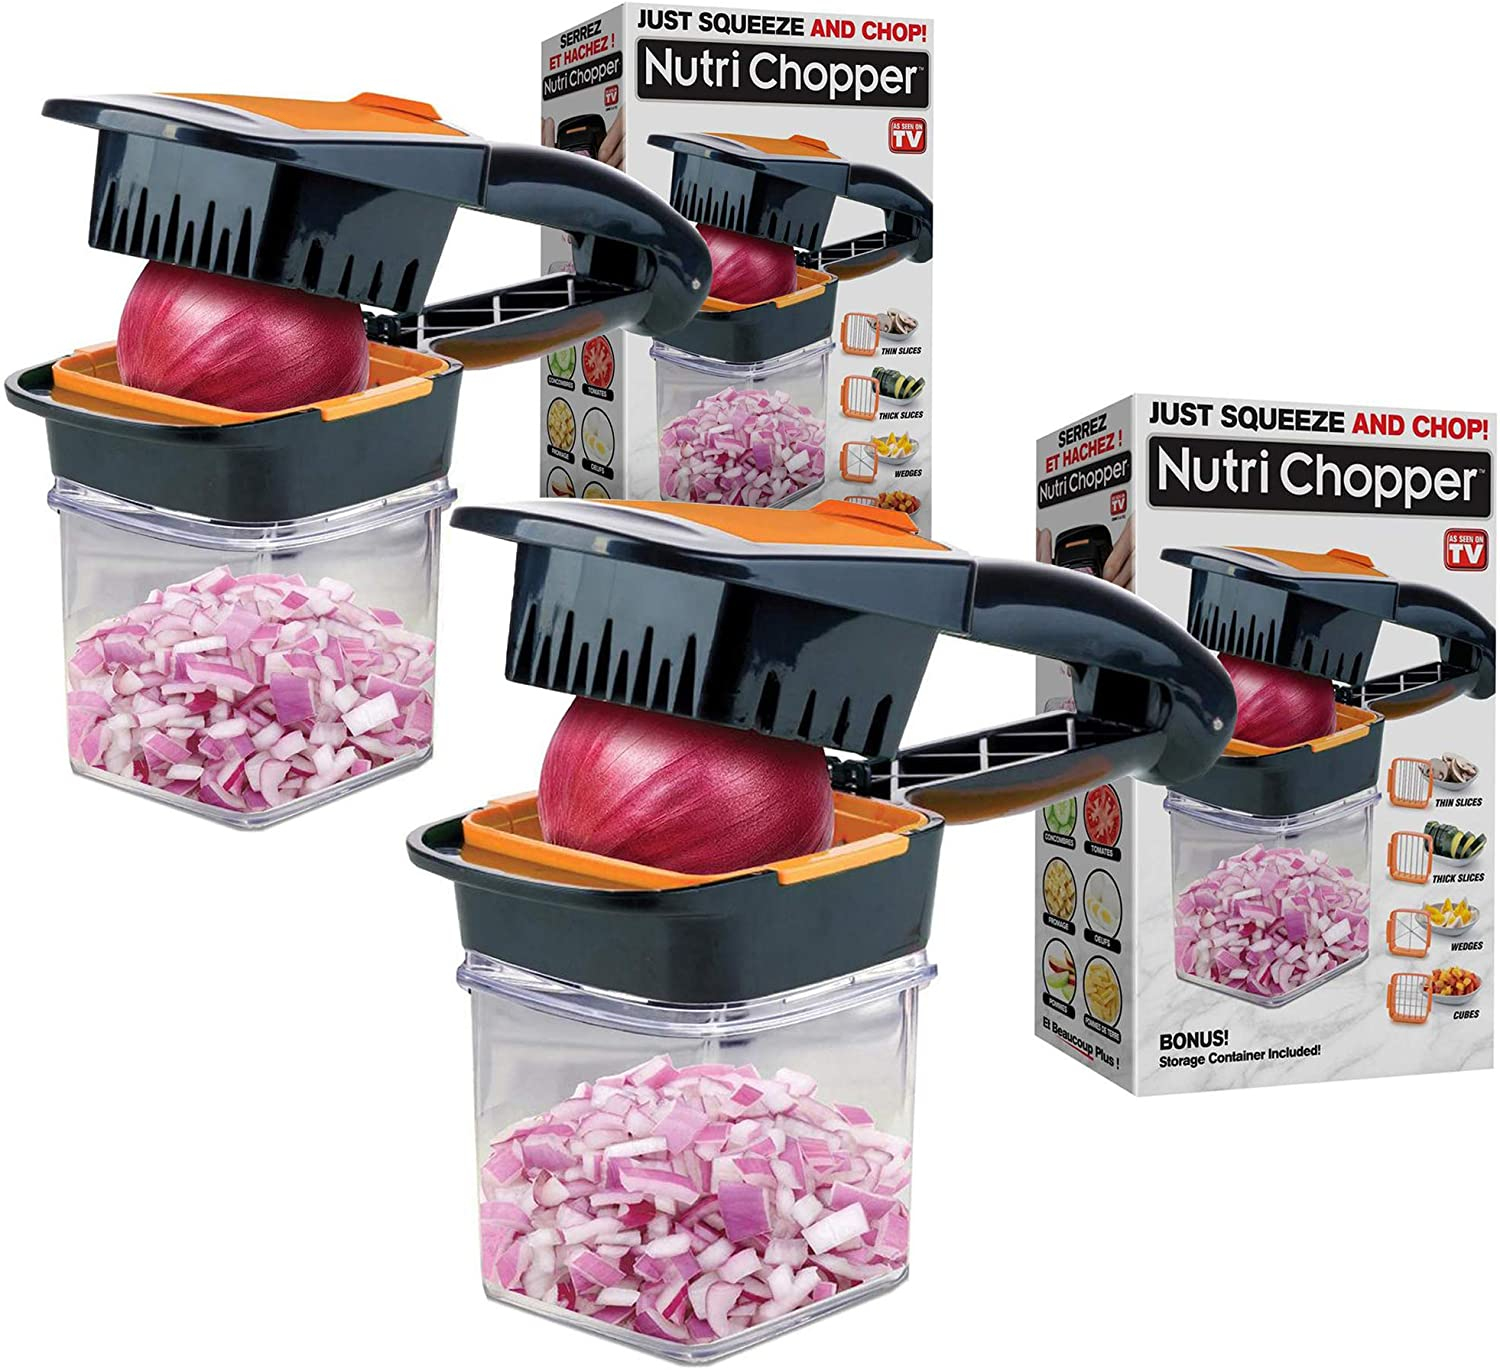 Nutrichopper with Fresh-keeping container - Chops, Slices, Cubes, Wedges – Multi-purpose Food Chopper with Stainless Steel Blades As Seen On TV